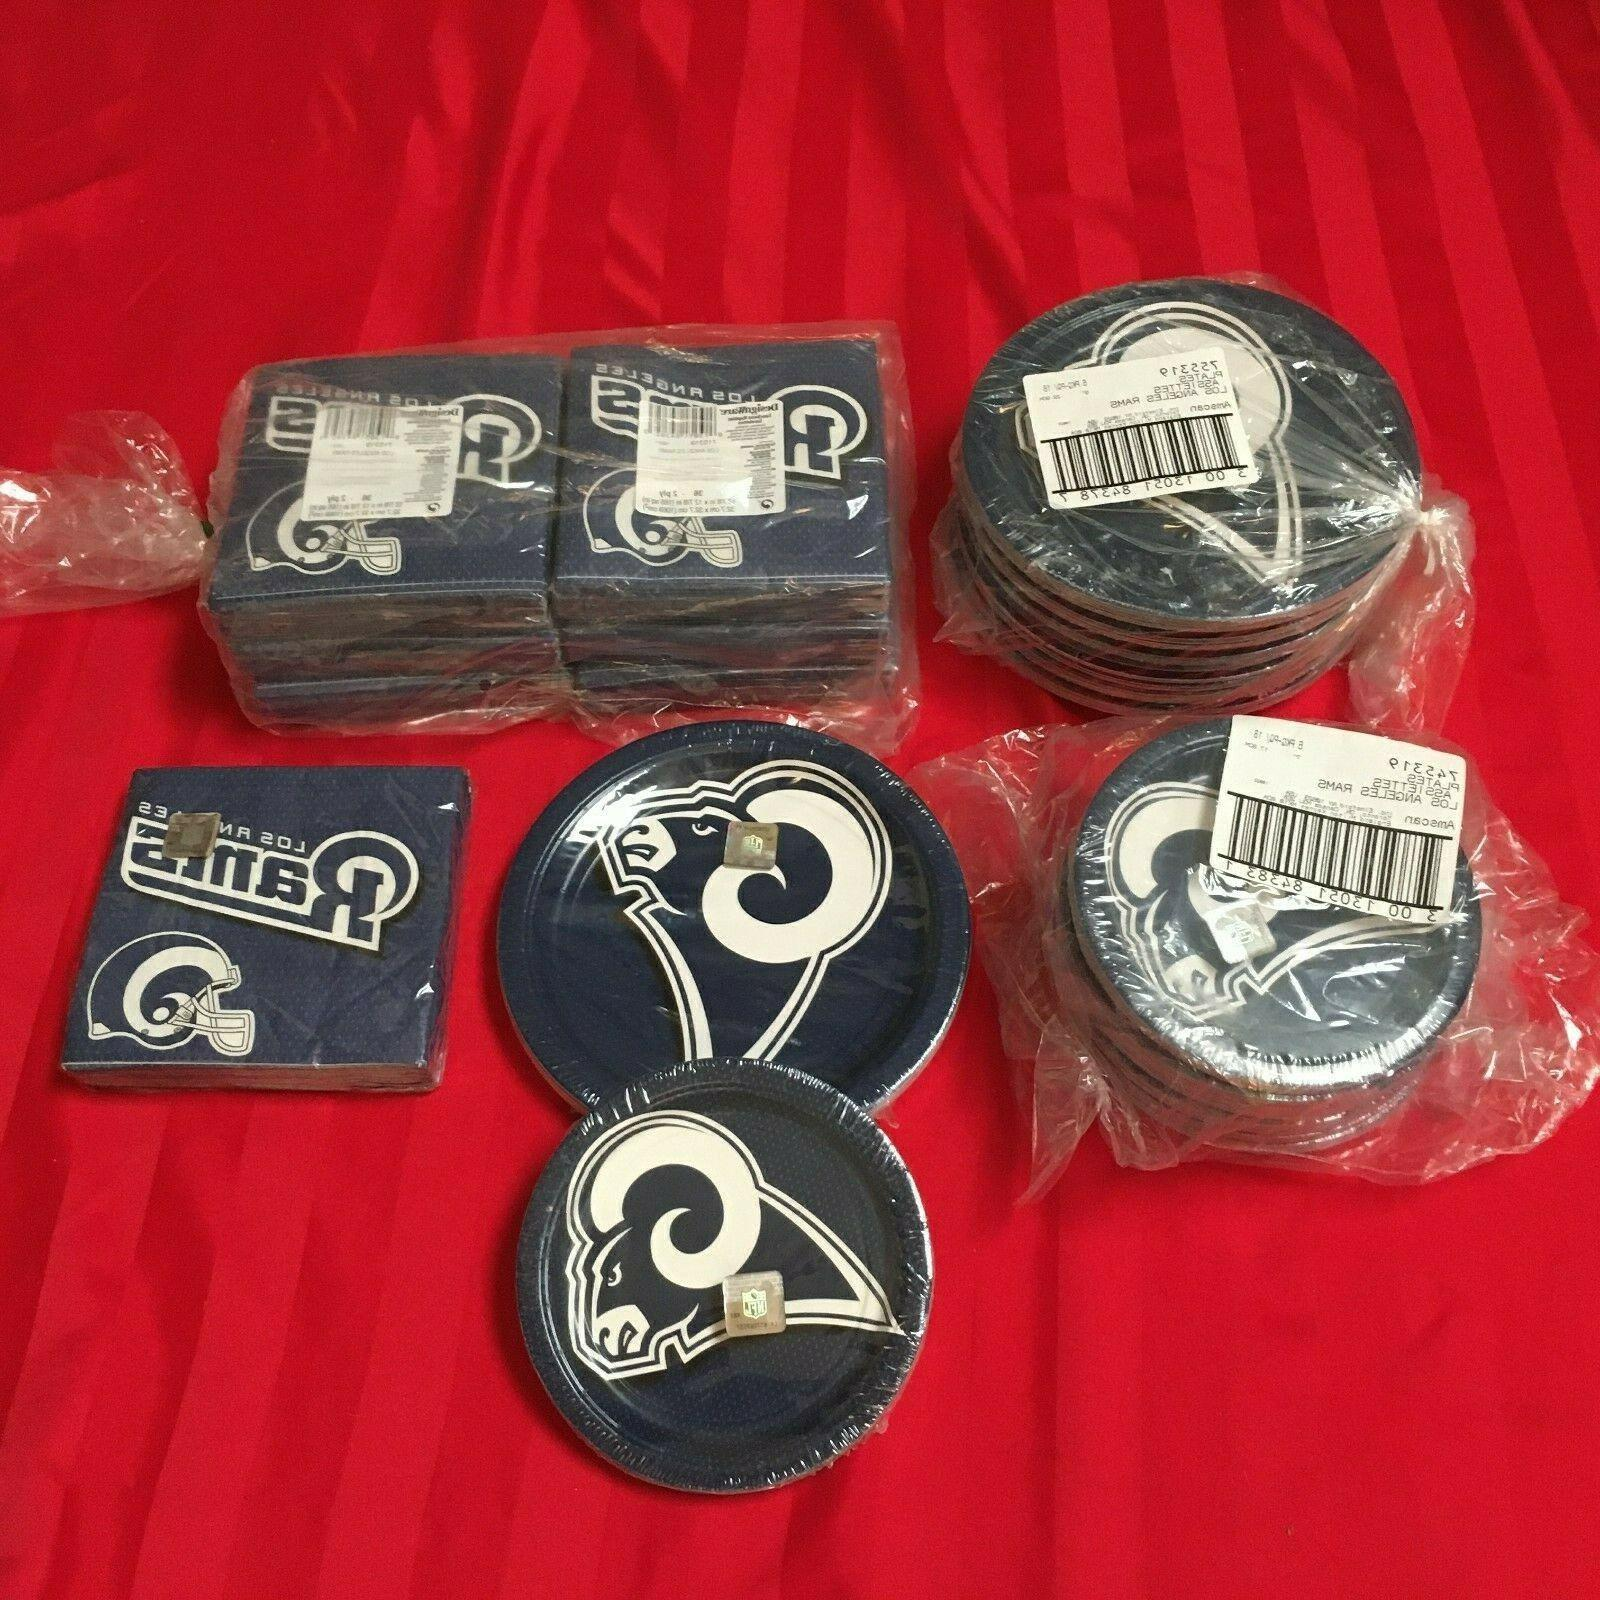 los angeles rams paper plates and napkins